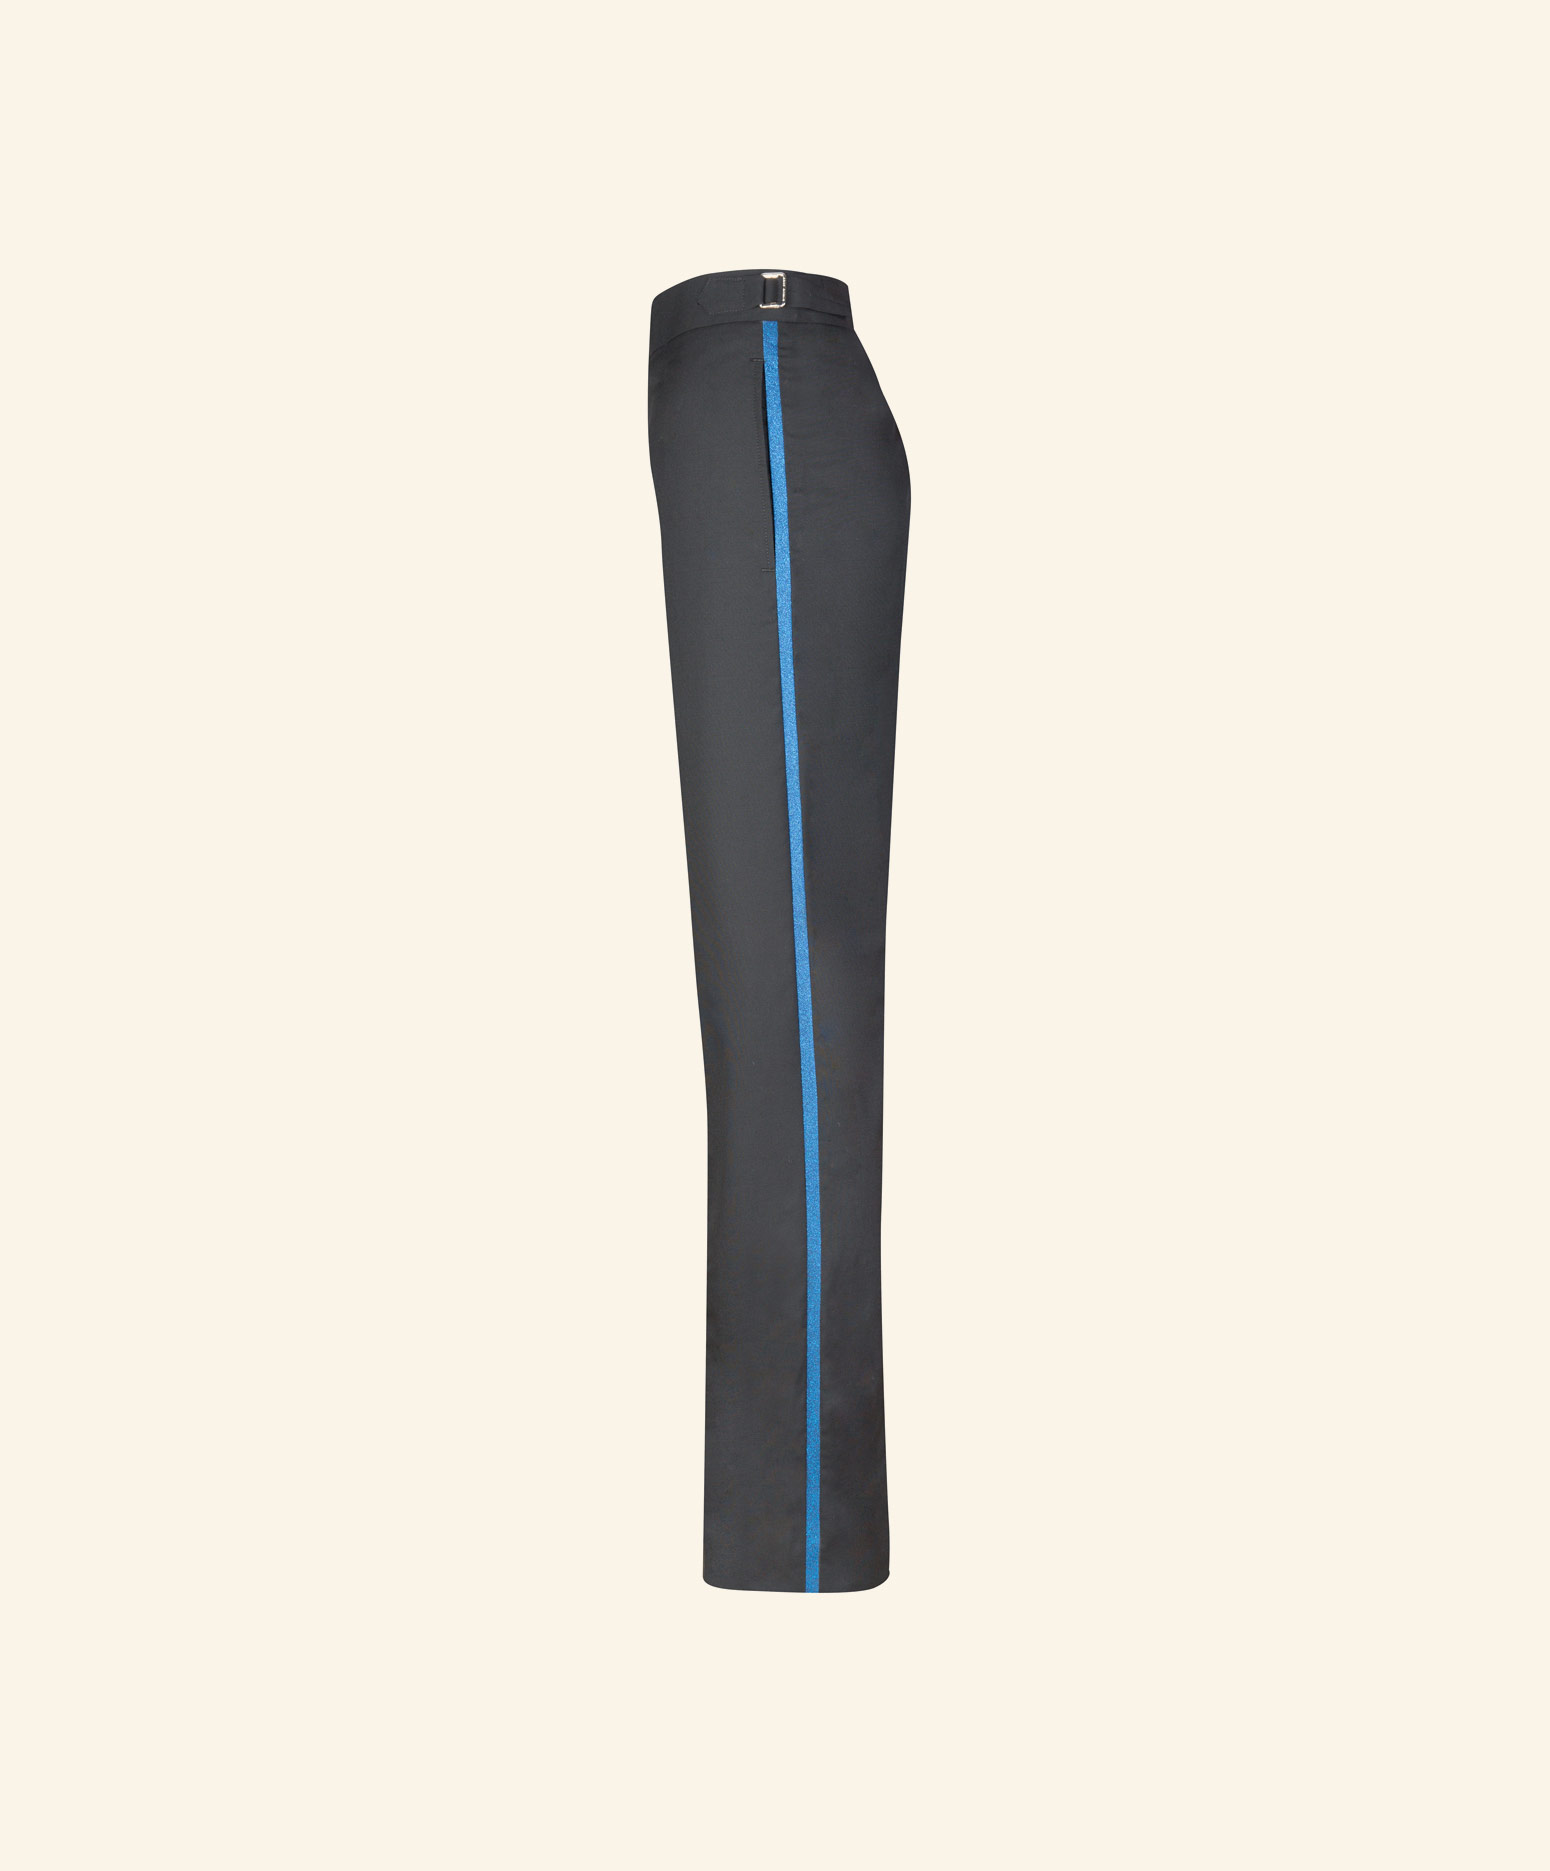 https://www.sannelondon.com/wp-content/uploads/2019/07/blue-lurex-trs-side.jpg